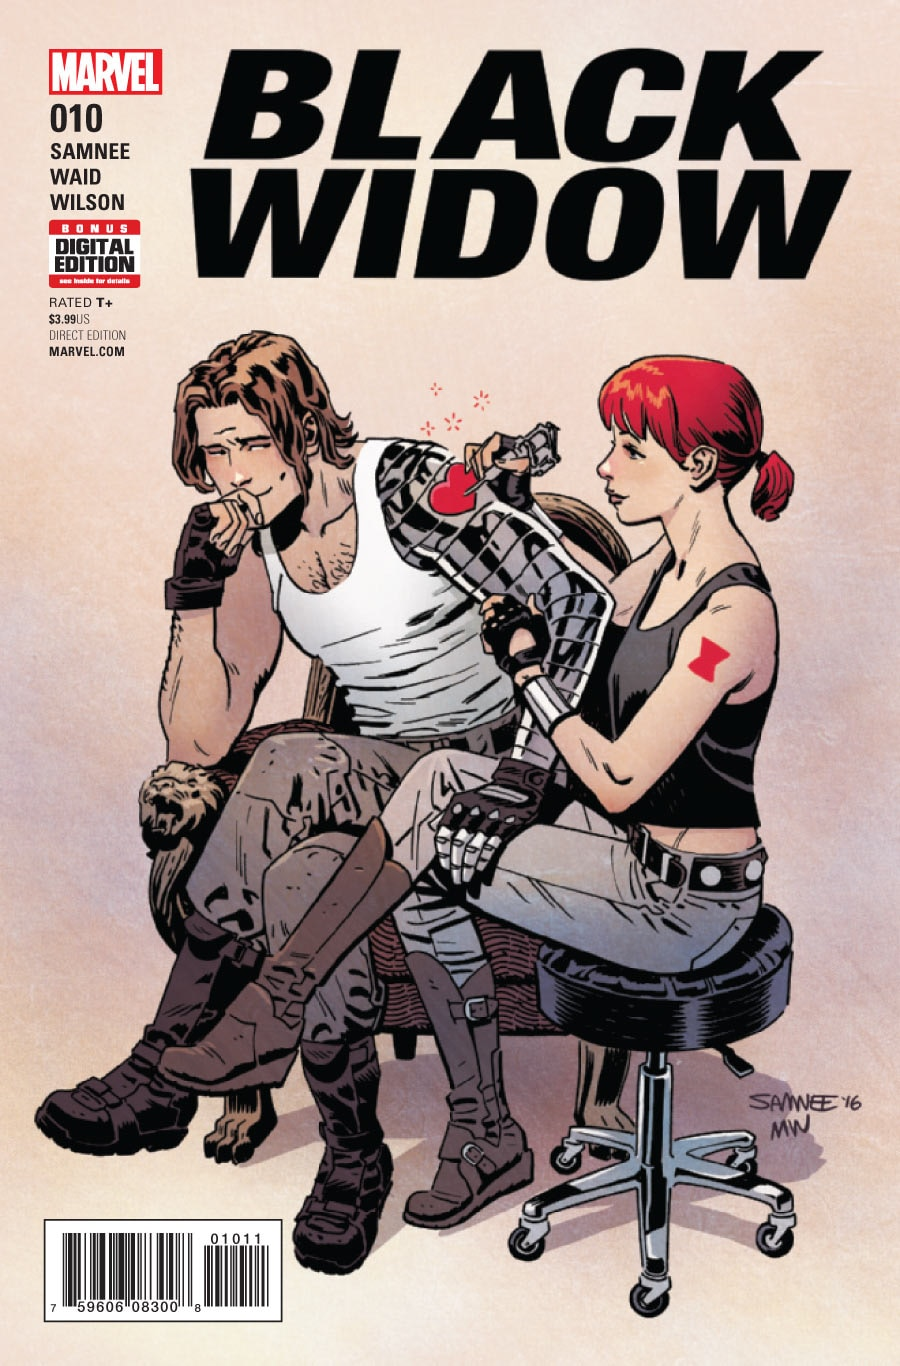 Copertina di Black Widow 10 del 2017, di Chris Samnee e Matthew Wilson